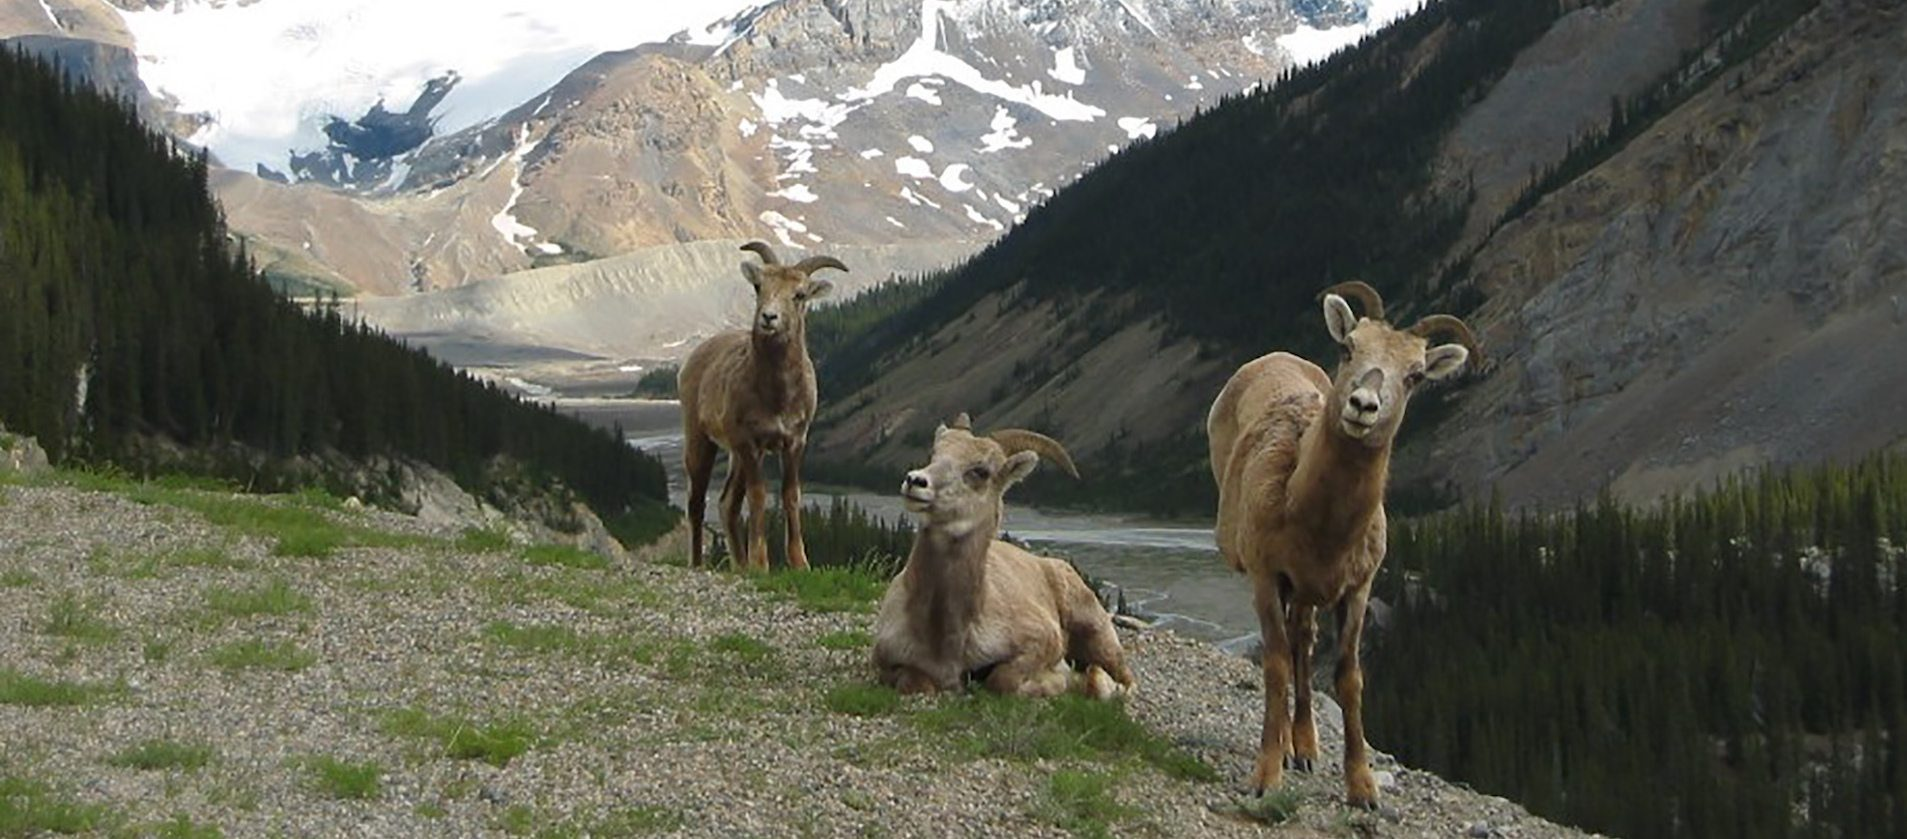 See bighorn sheep on the Evening Wildlife Safari Tour with Discover Banff Tours